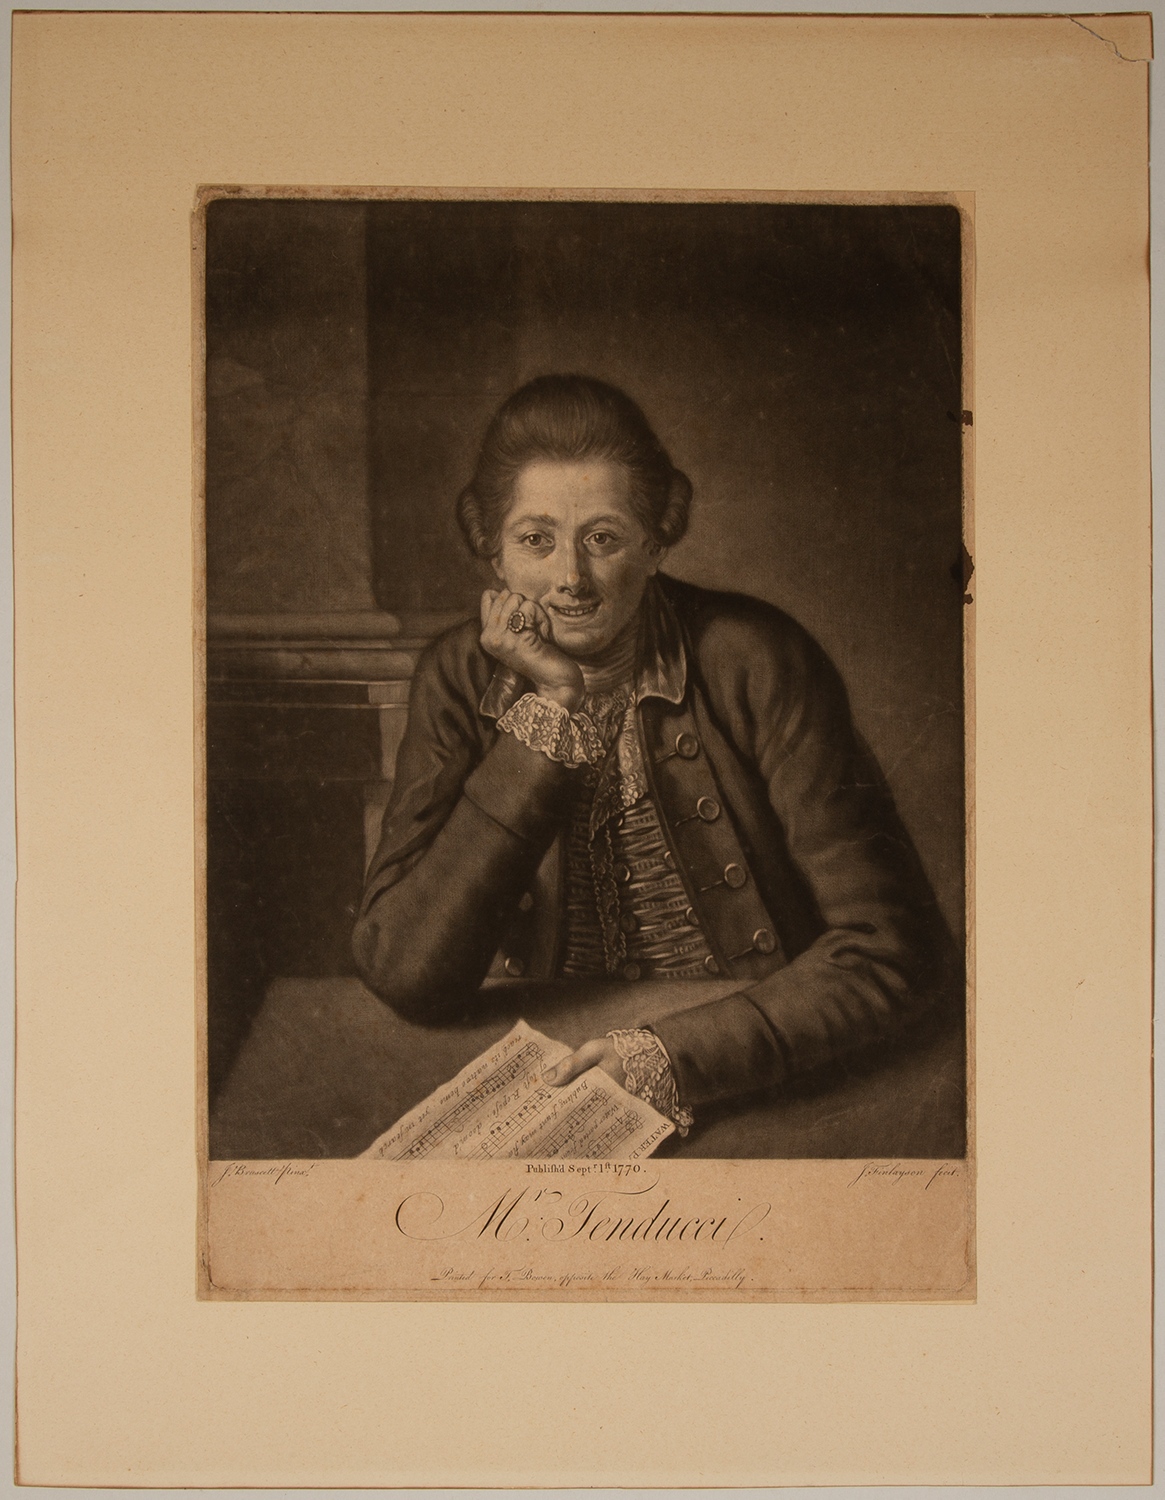 """Mr. Tenducci."" Fine large mezzotint engraving of the noted Italian soprano castrato and composer by J. Finlayson after the painting by J. Bruscett. The singer is depicted seated, holding a sheet of printed music from the ""Water Parted from the Sea."" Giusto Ferdinando TENDUCCI."